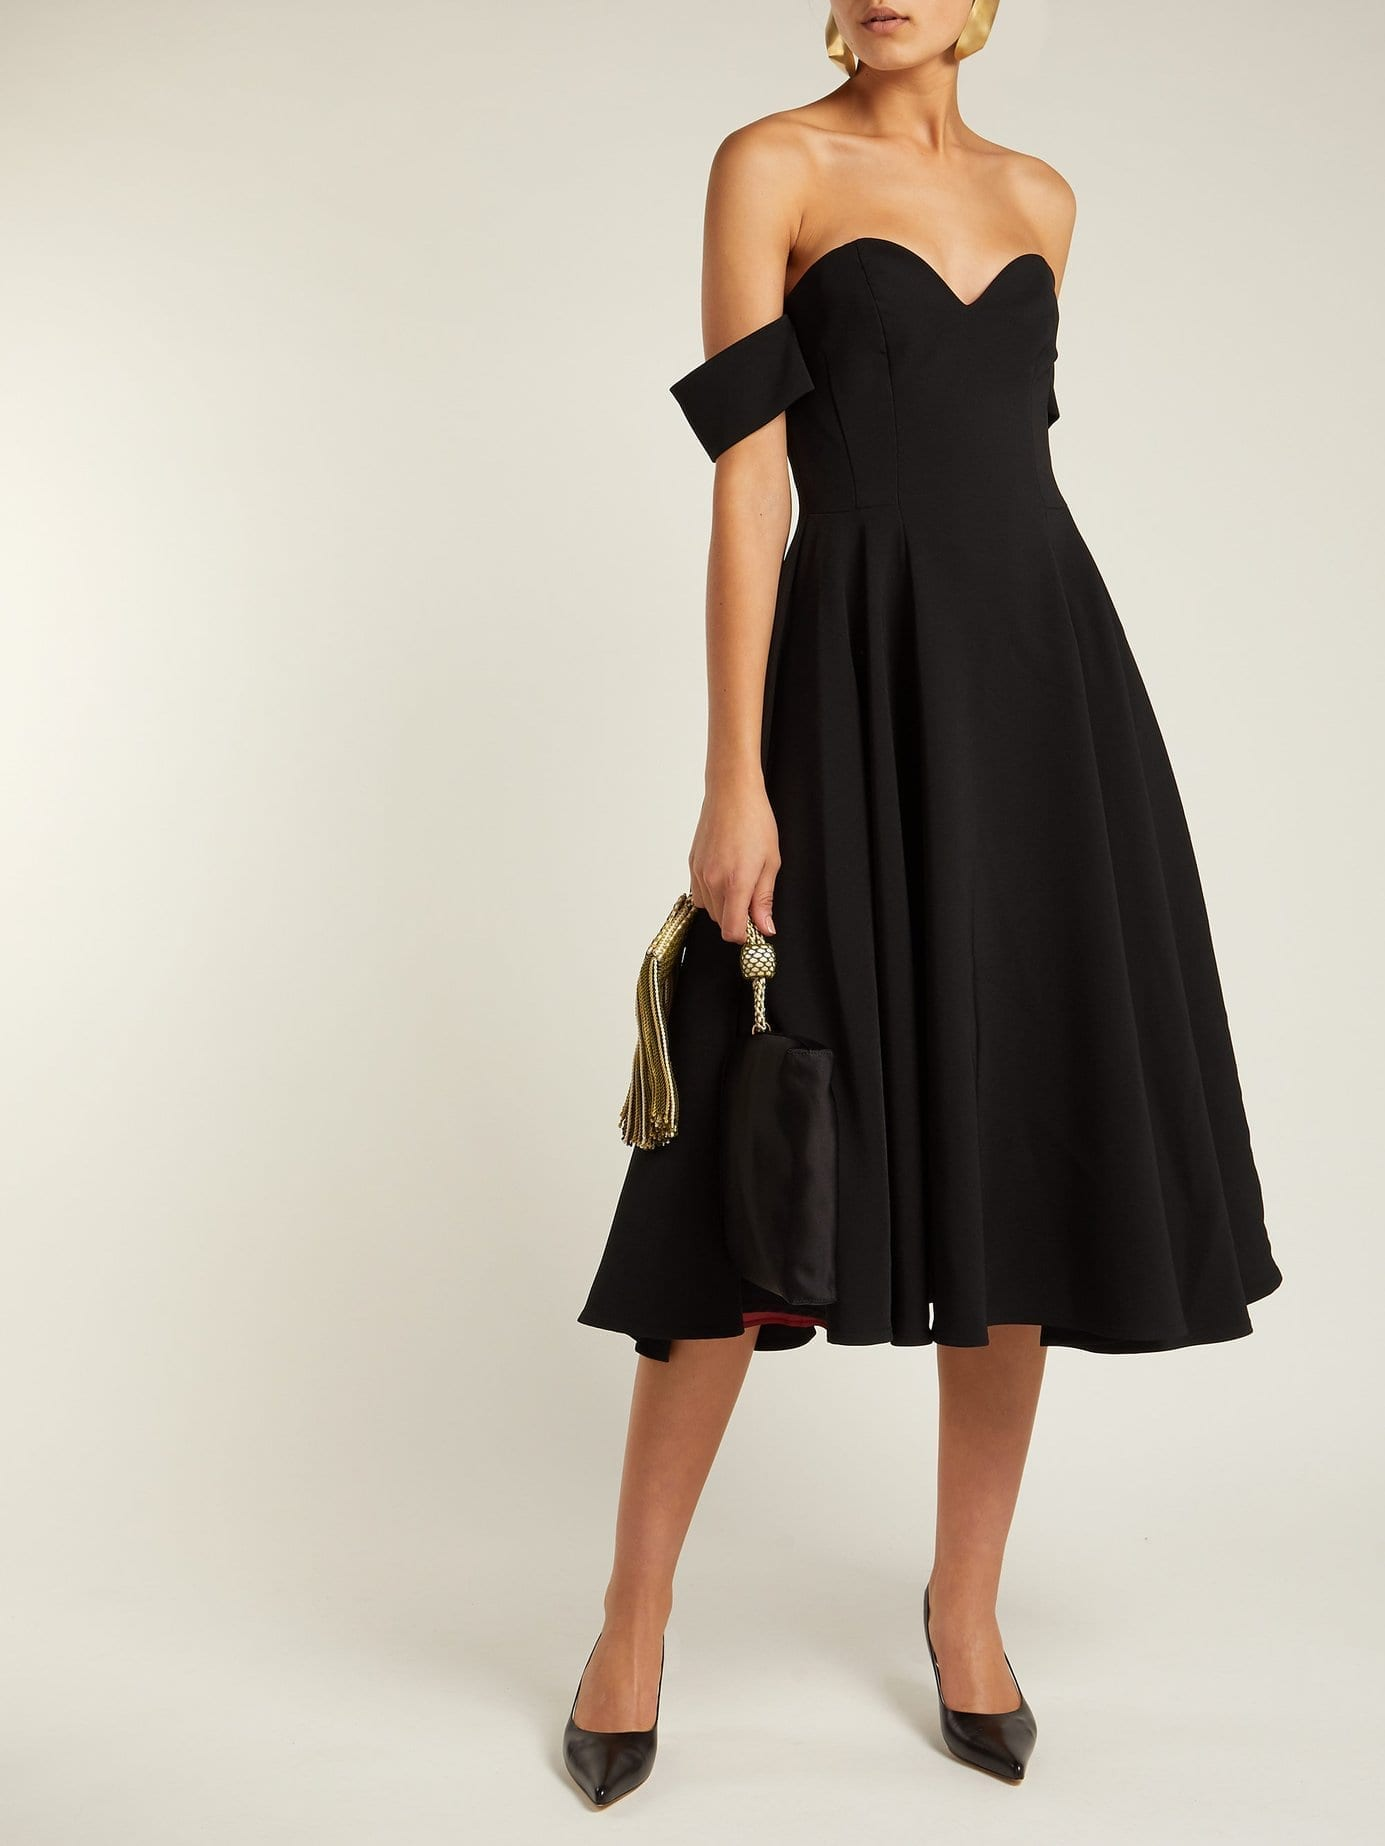 SARA BATTAGLIA Off The Shoulder Crepe Black Dress